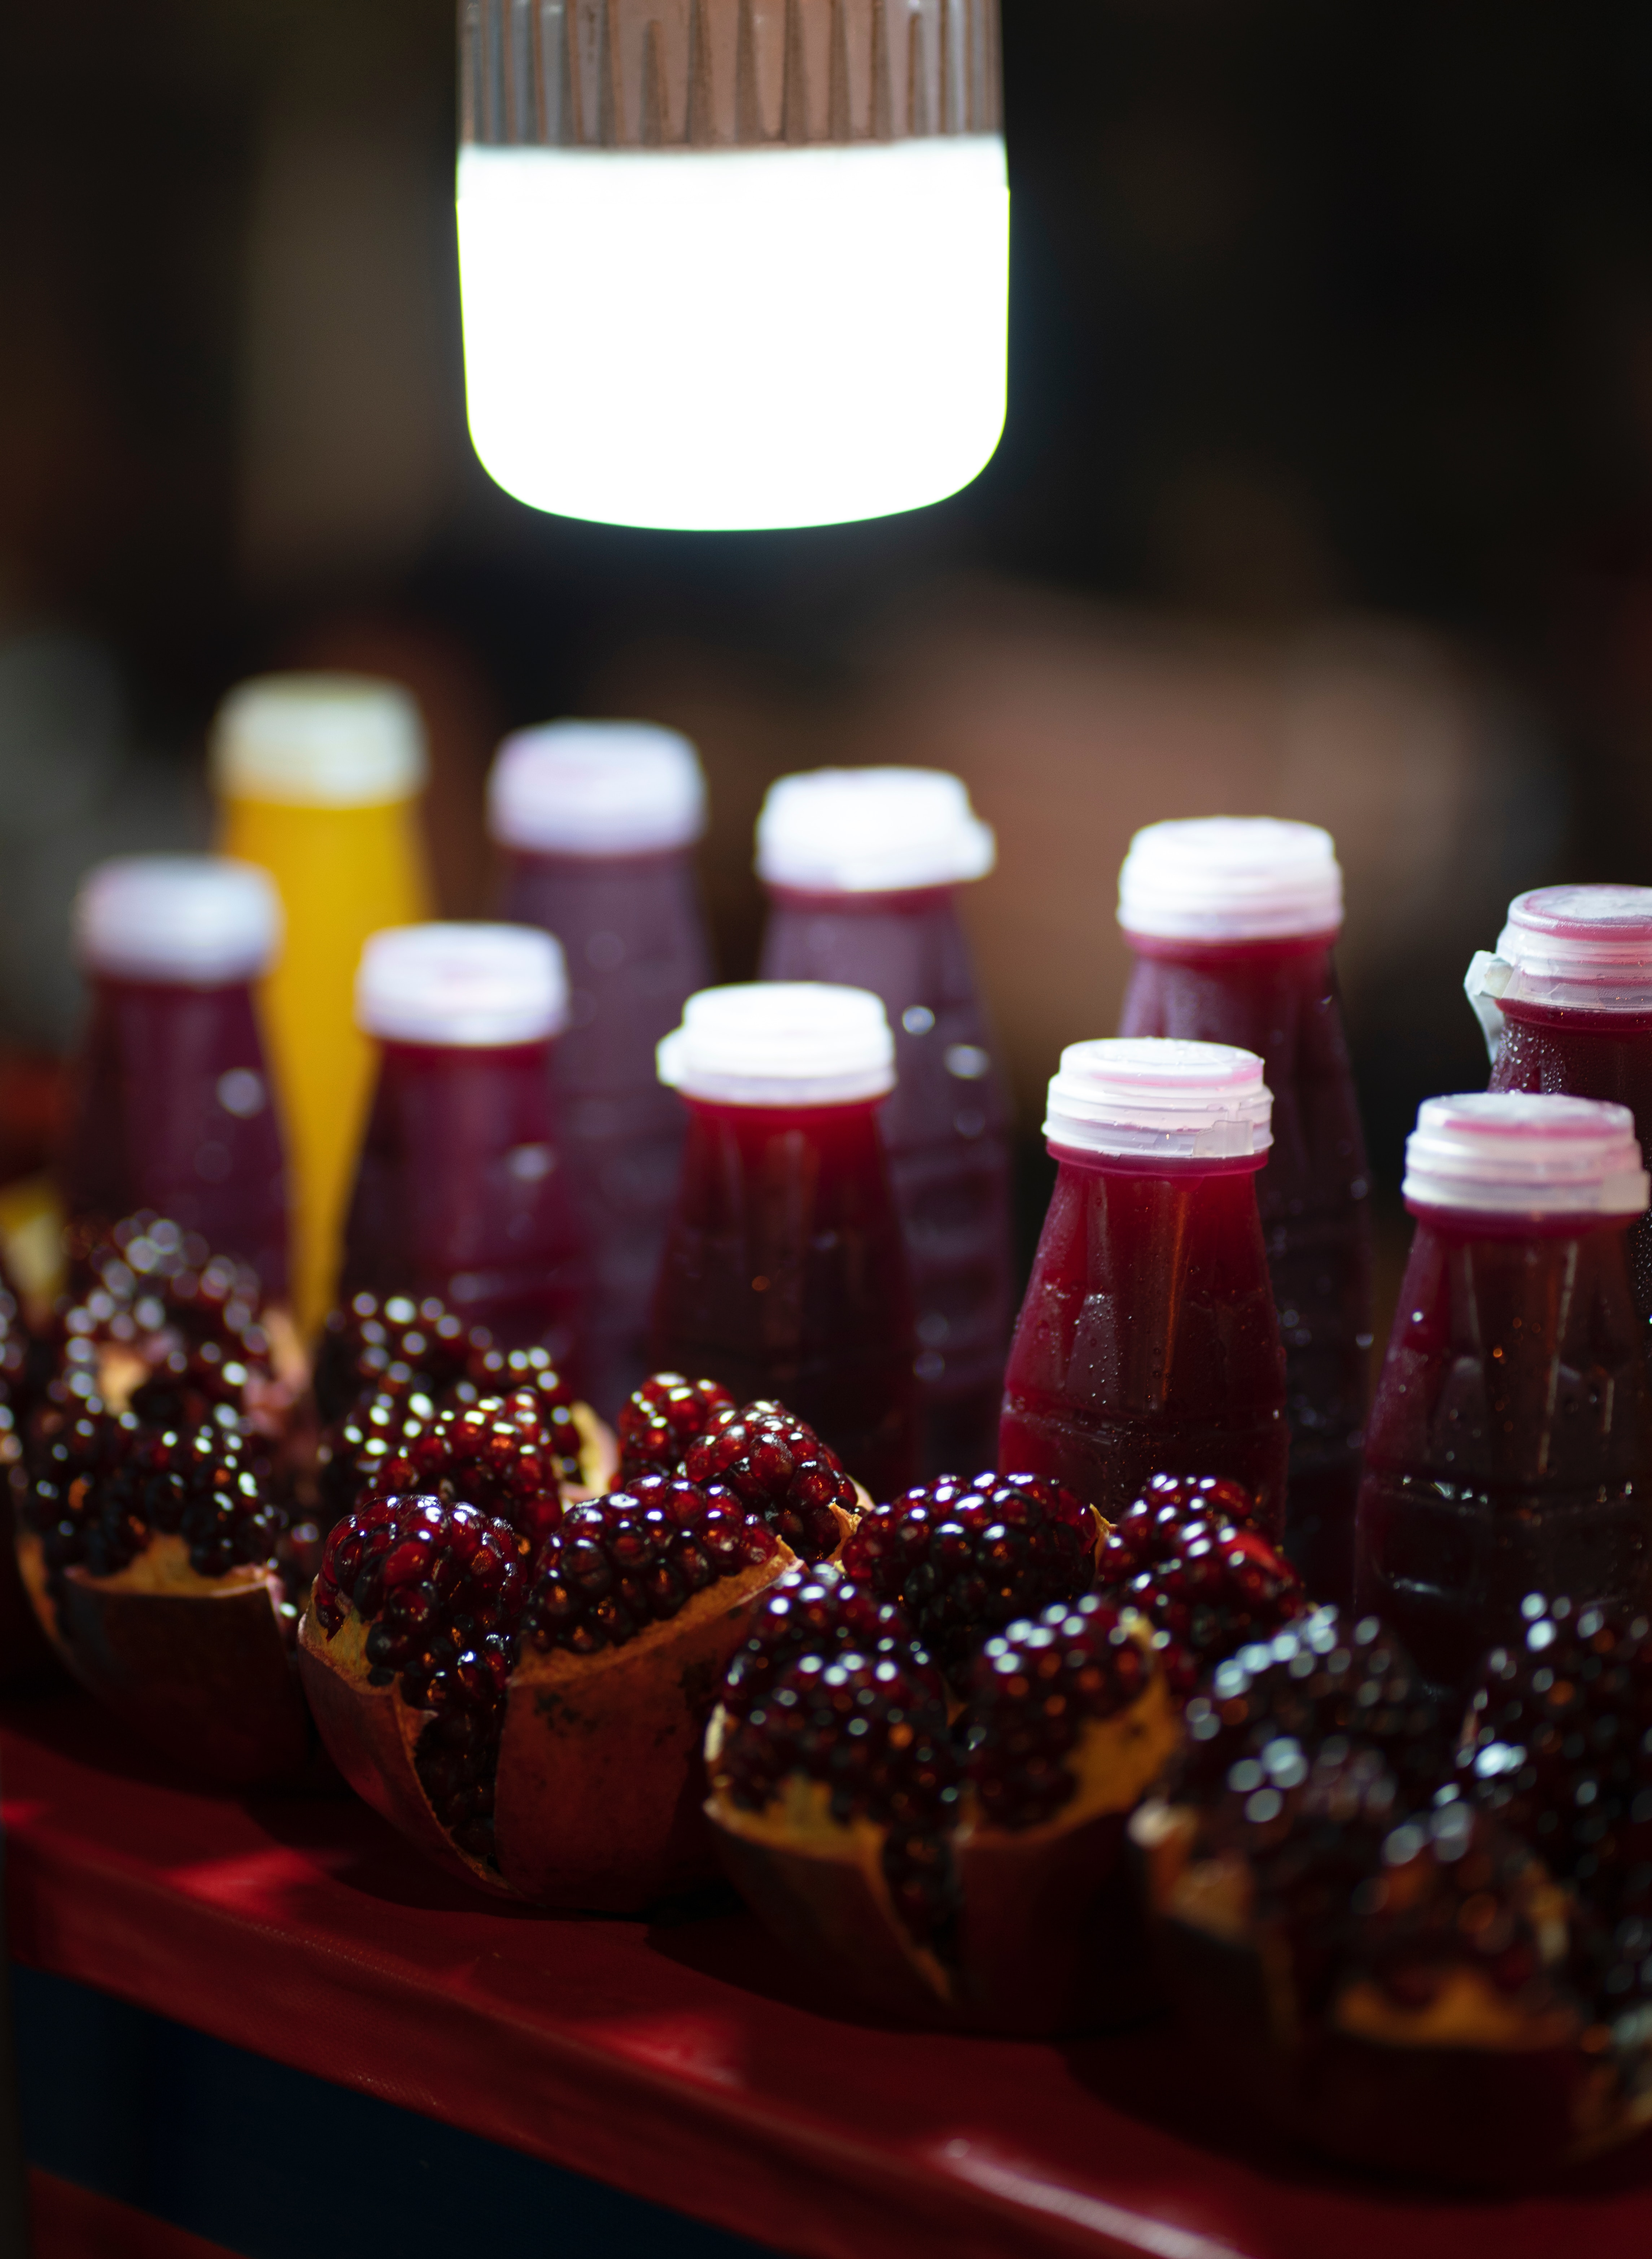 pomegranate pie near juice bottles